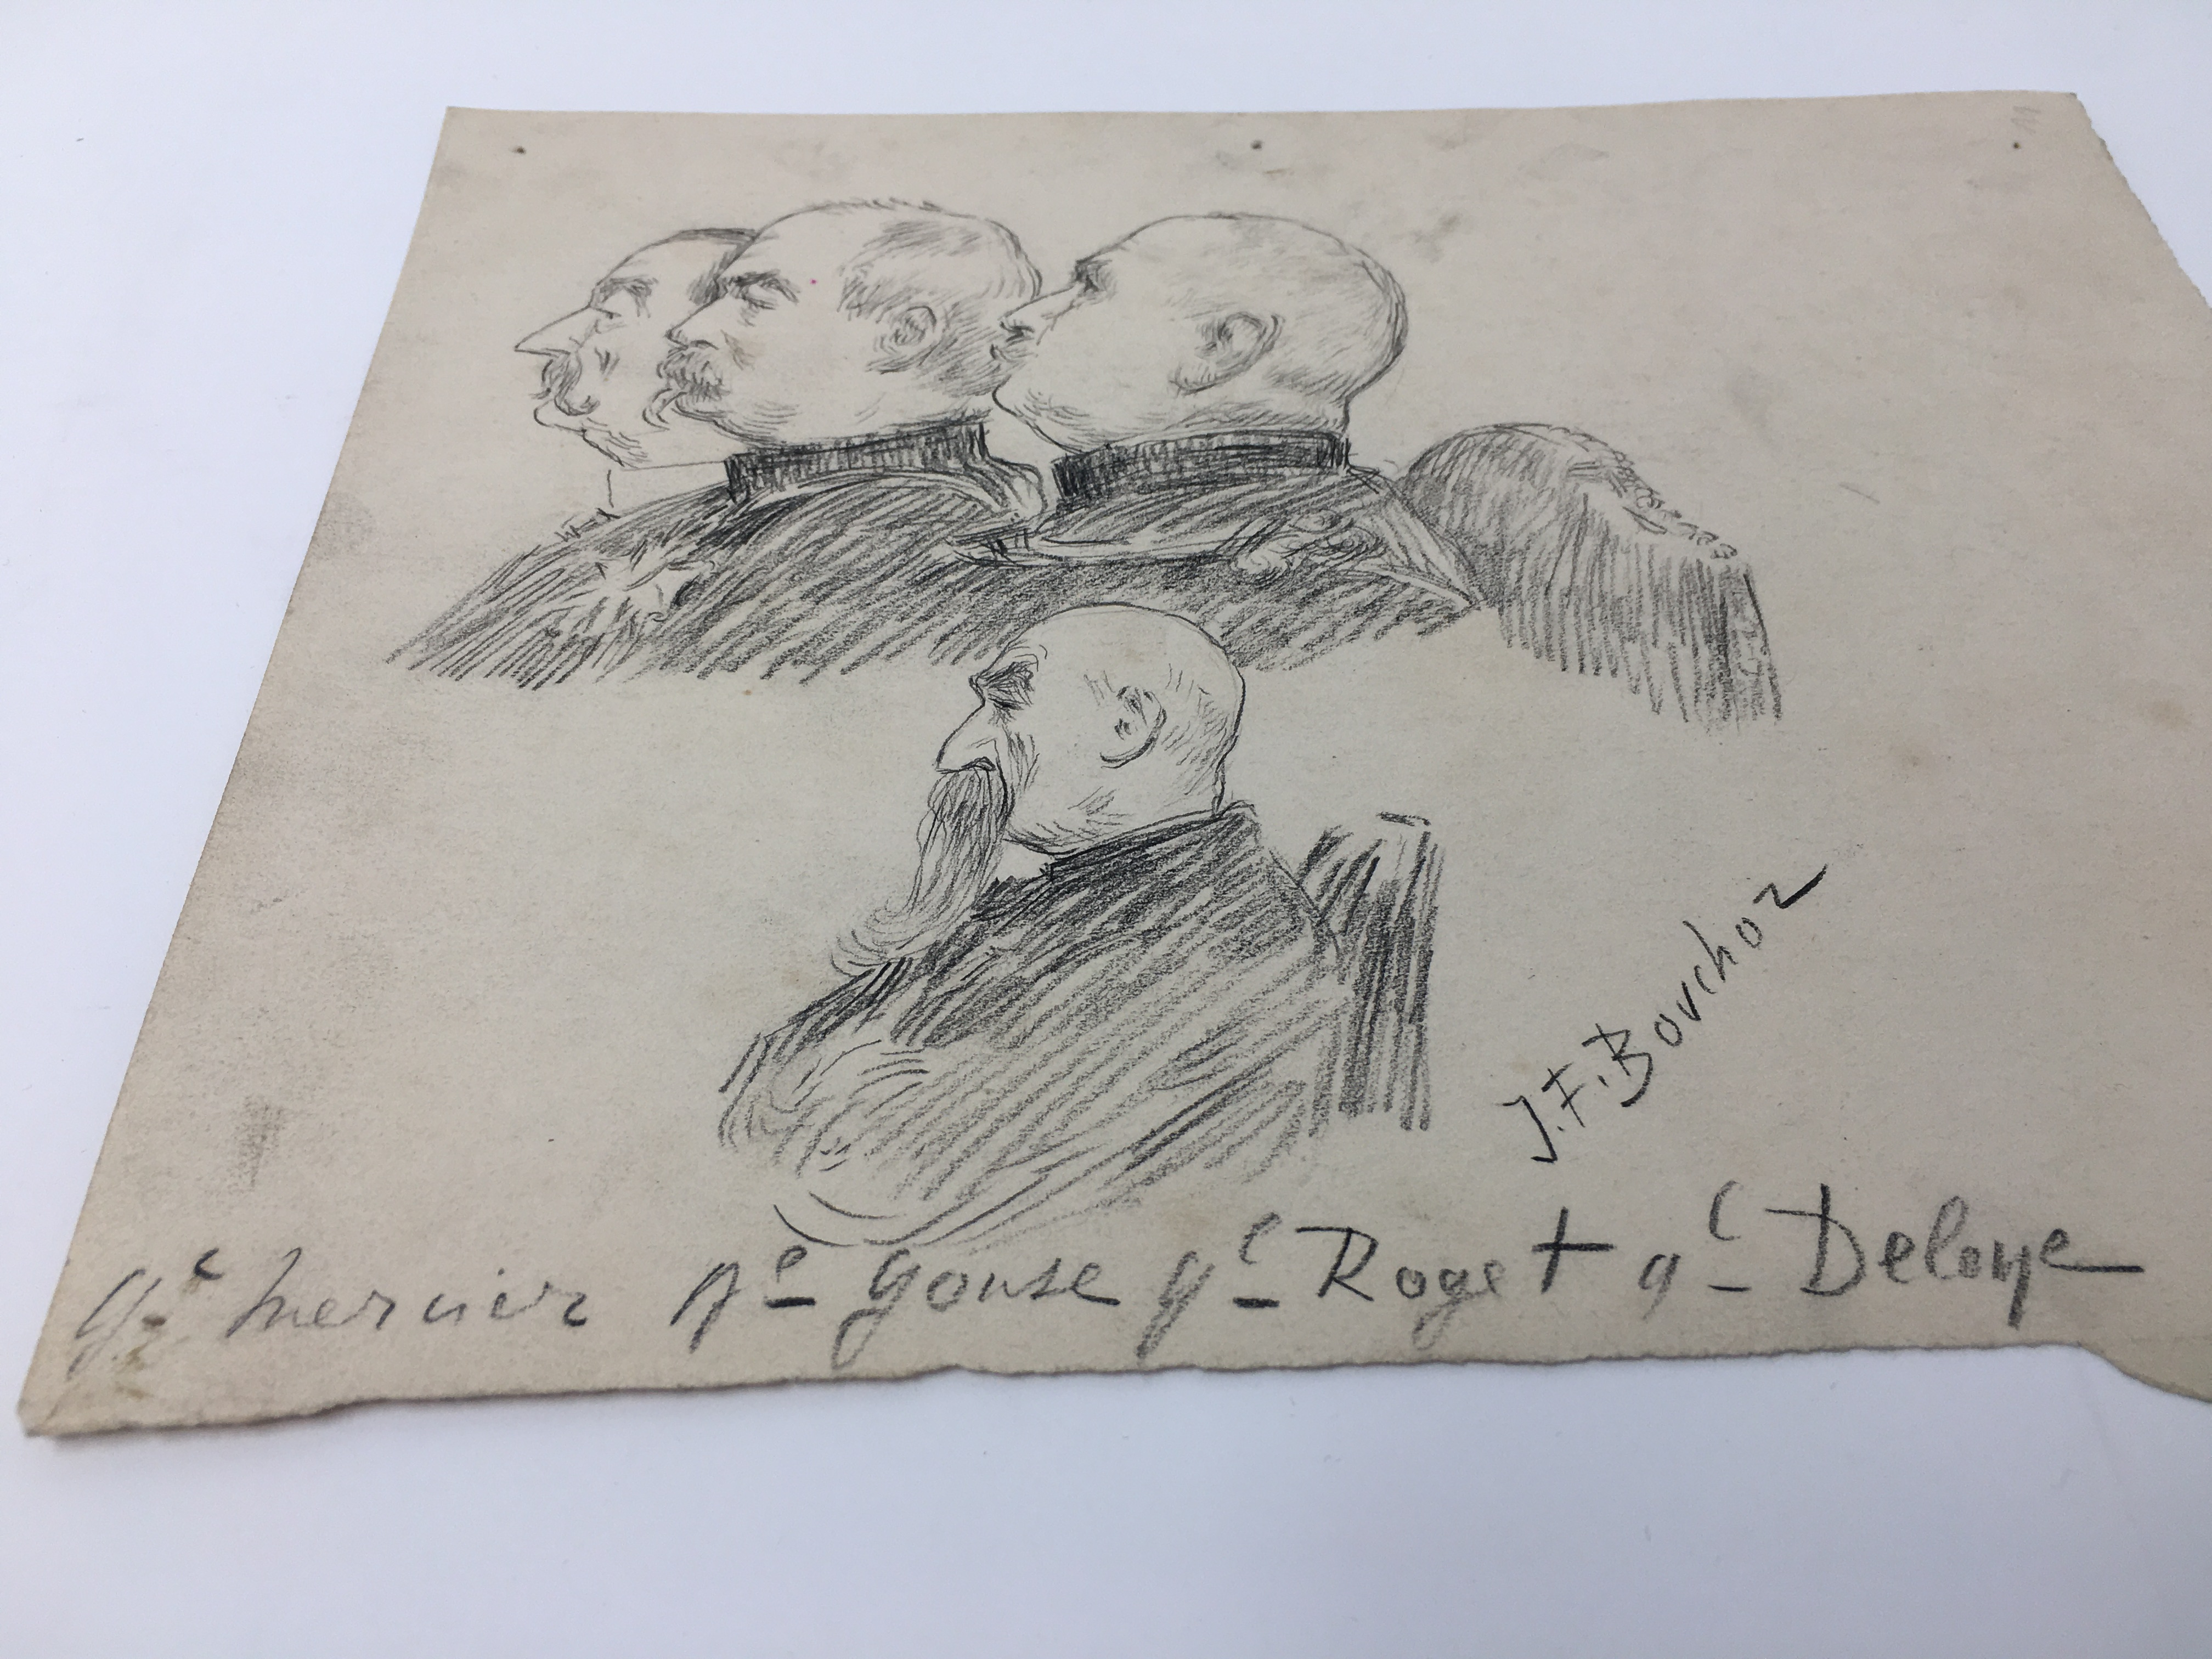 J'Accuse Newspaper, Emile Zola Quote, Signed Dreyfus Portrait, Rare Trial Drawings & Schwartzkoppen - Image 61 of 74